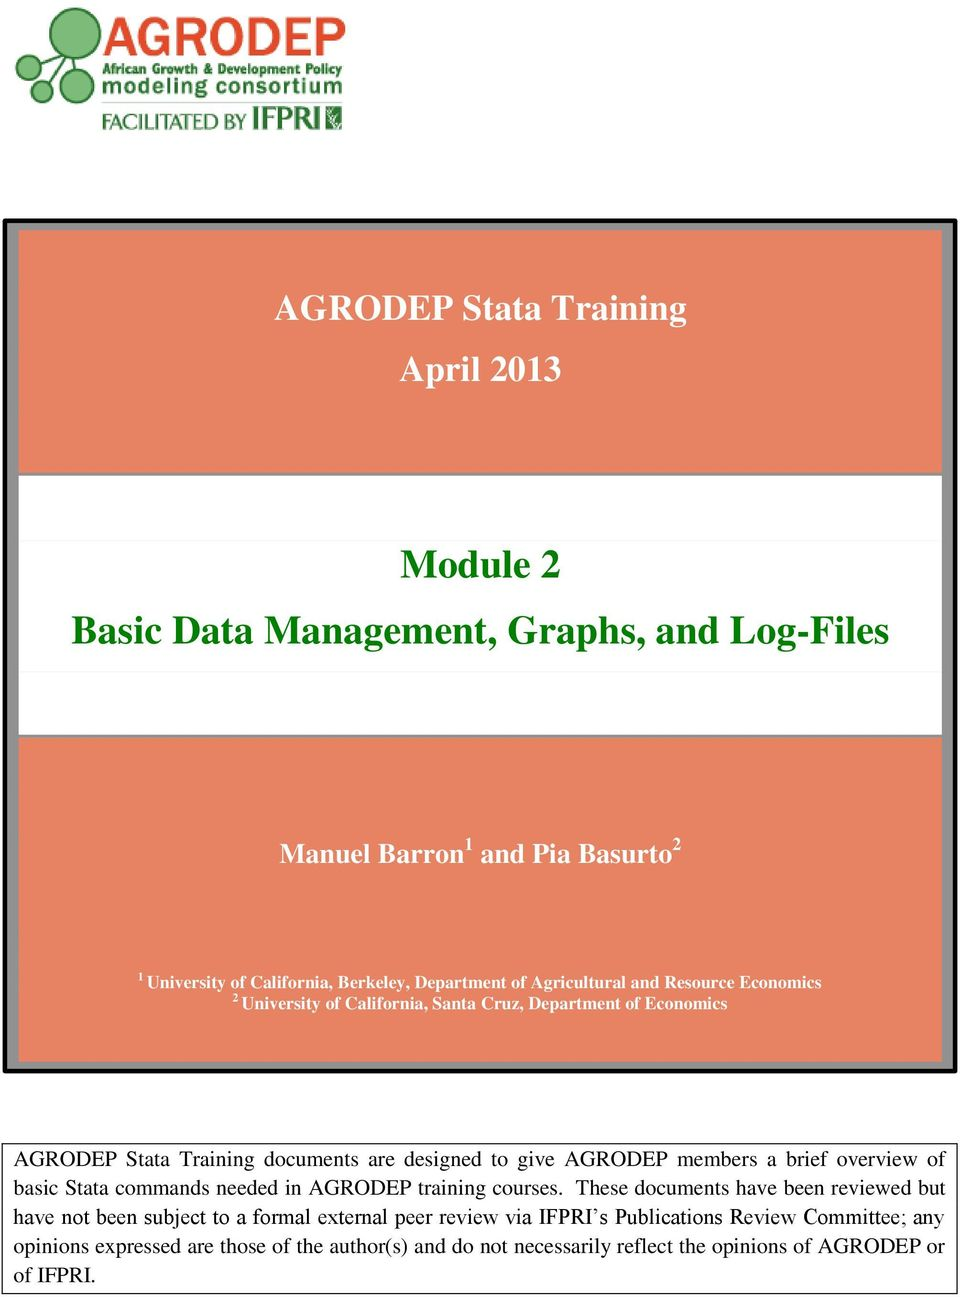 AGRODEP members a brief overview of basic Stata commands needed in AGRODEP training courses.